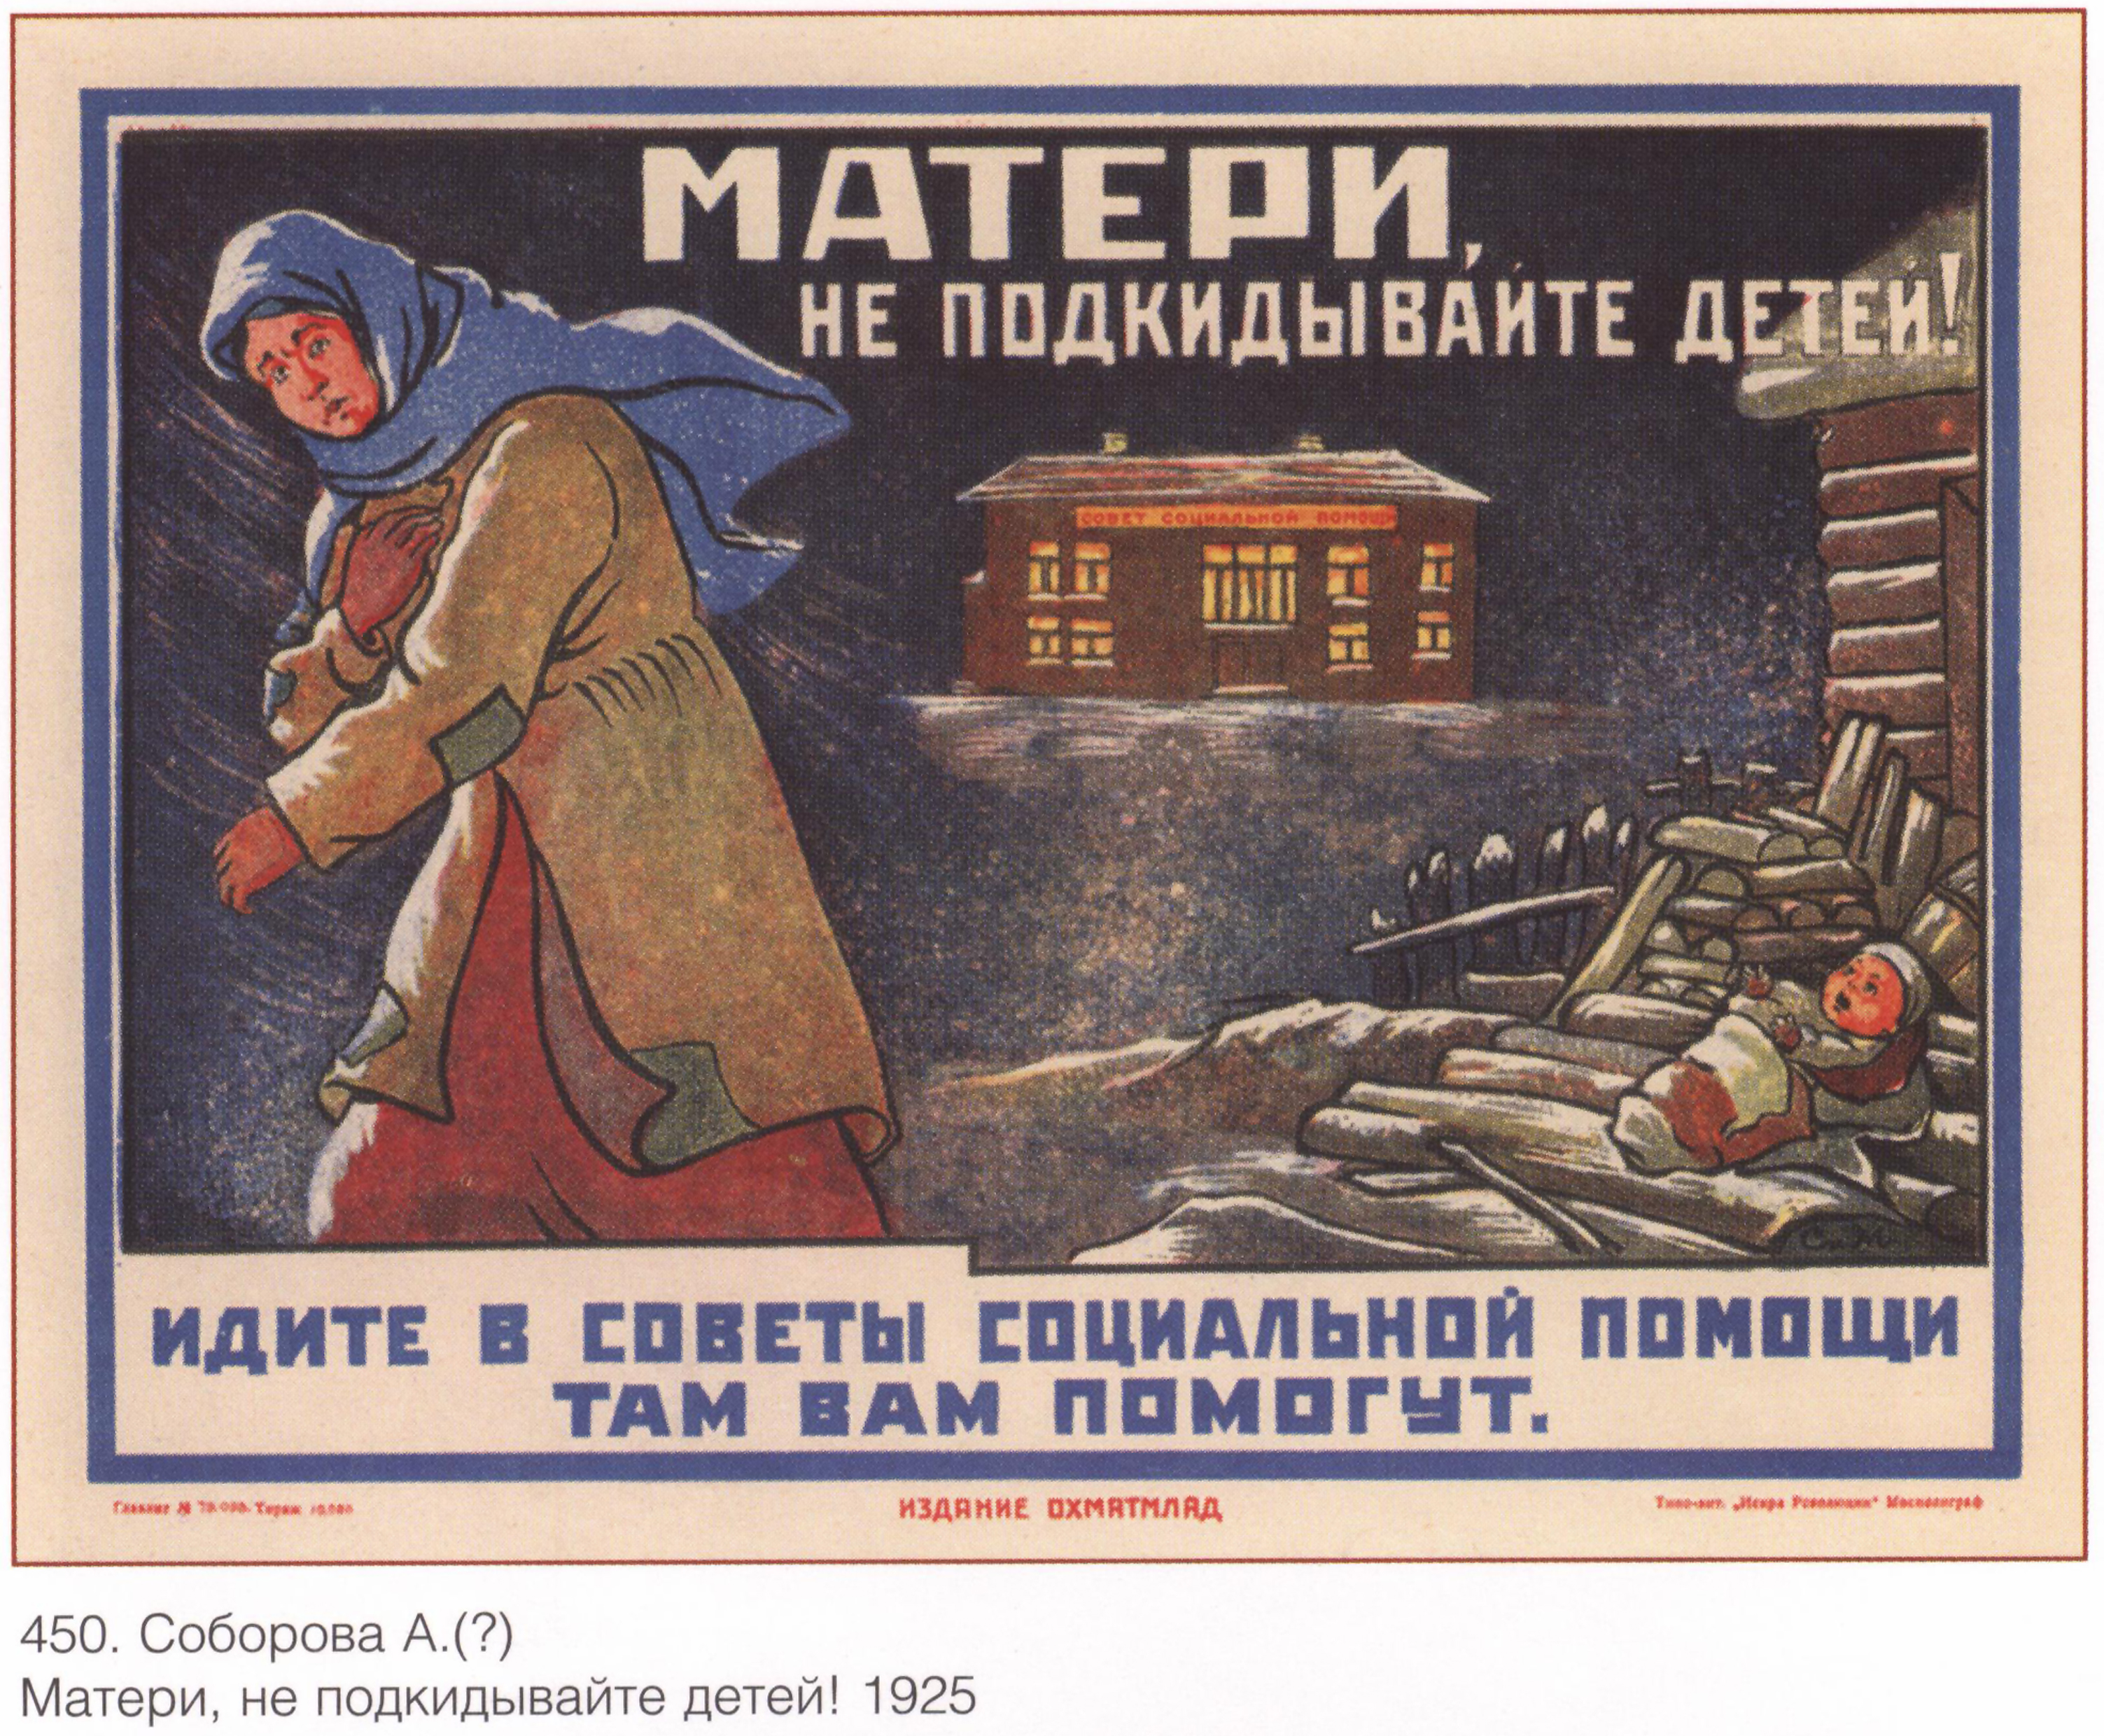 Childhood in Soviet Posters (14 photos) .